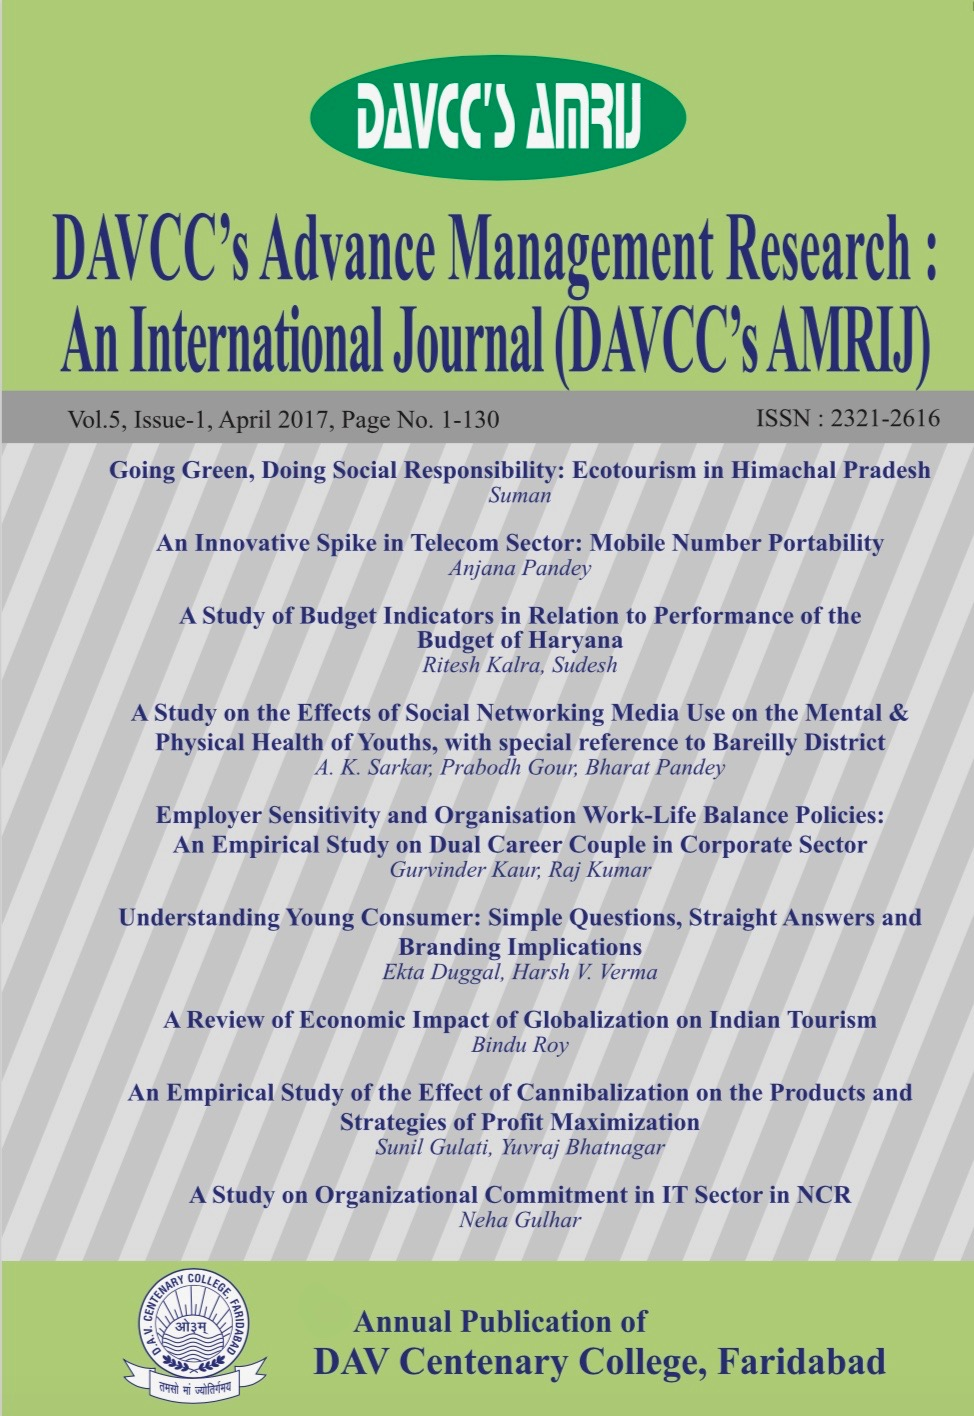 DAVCC's Advance Management Research